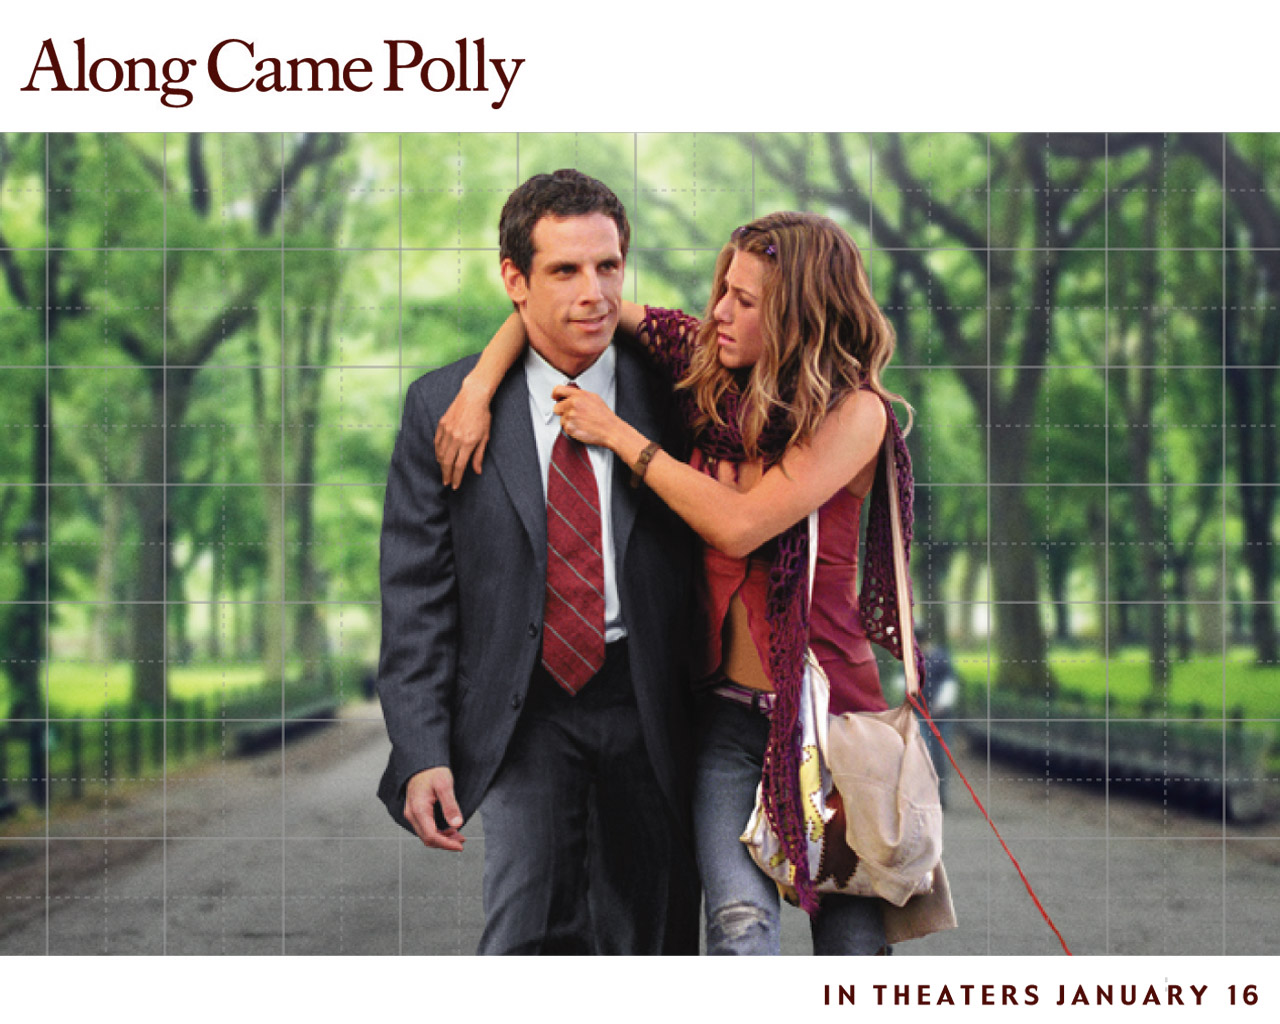 Forgotten Gems Along Came Polly Is Funny In The Best Uncomfortable Way Ebert Did It Better Gasbag Reviews